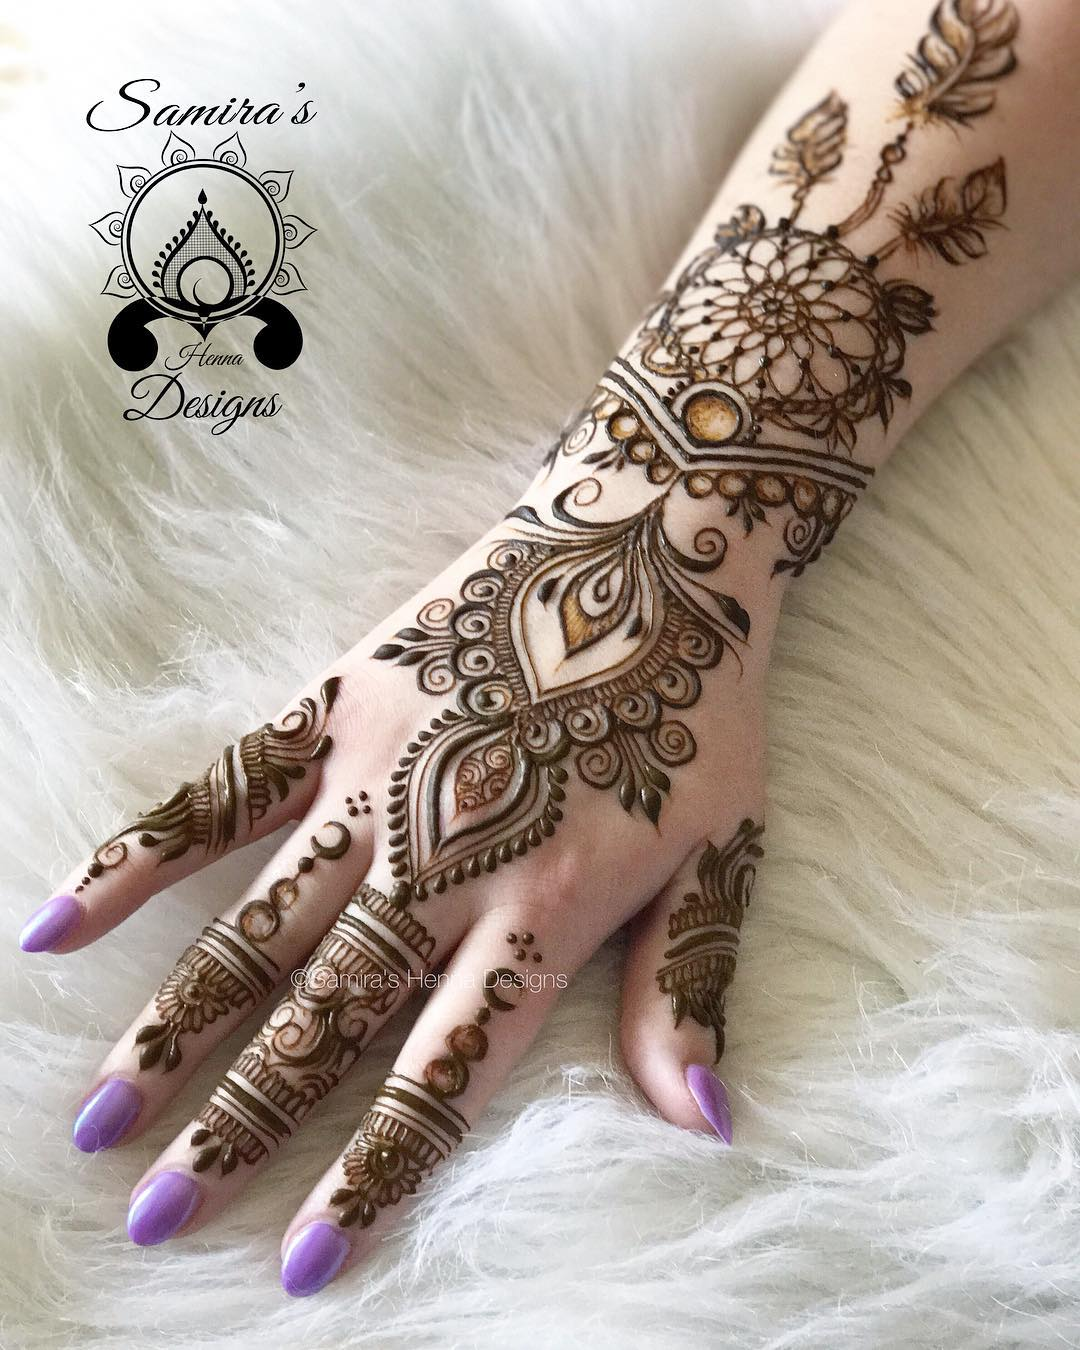 Elegant Henna Designs: Simple And Elegant Mehndi Designs For Your Hands